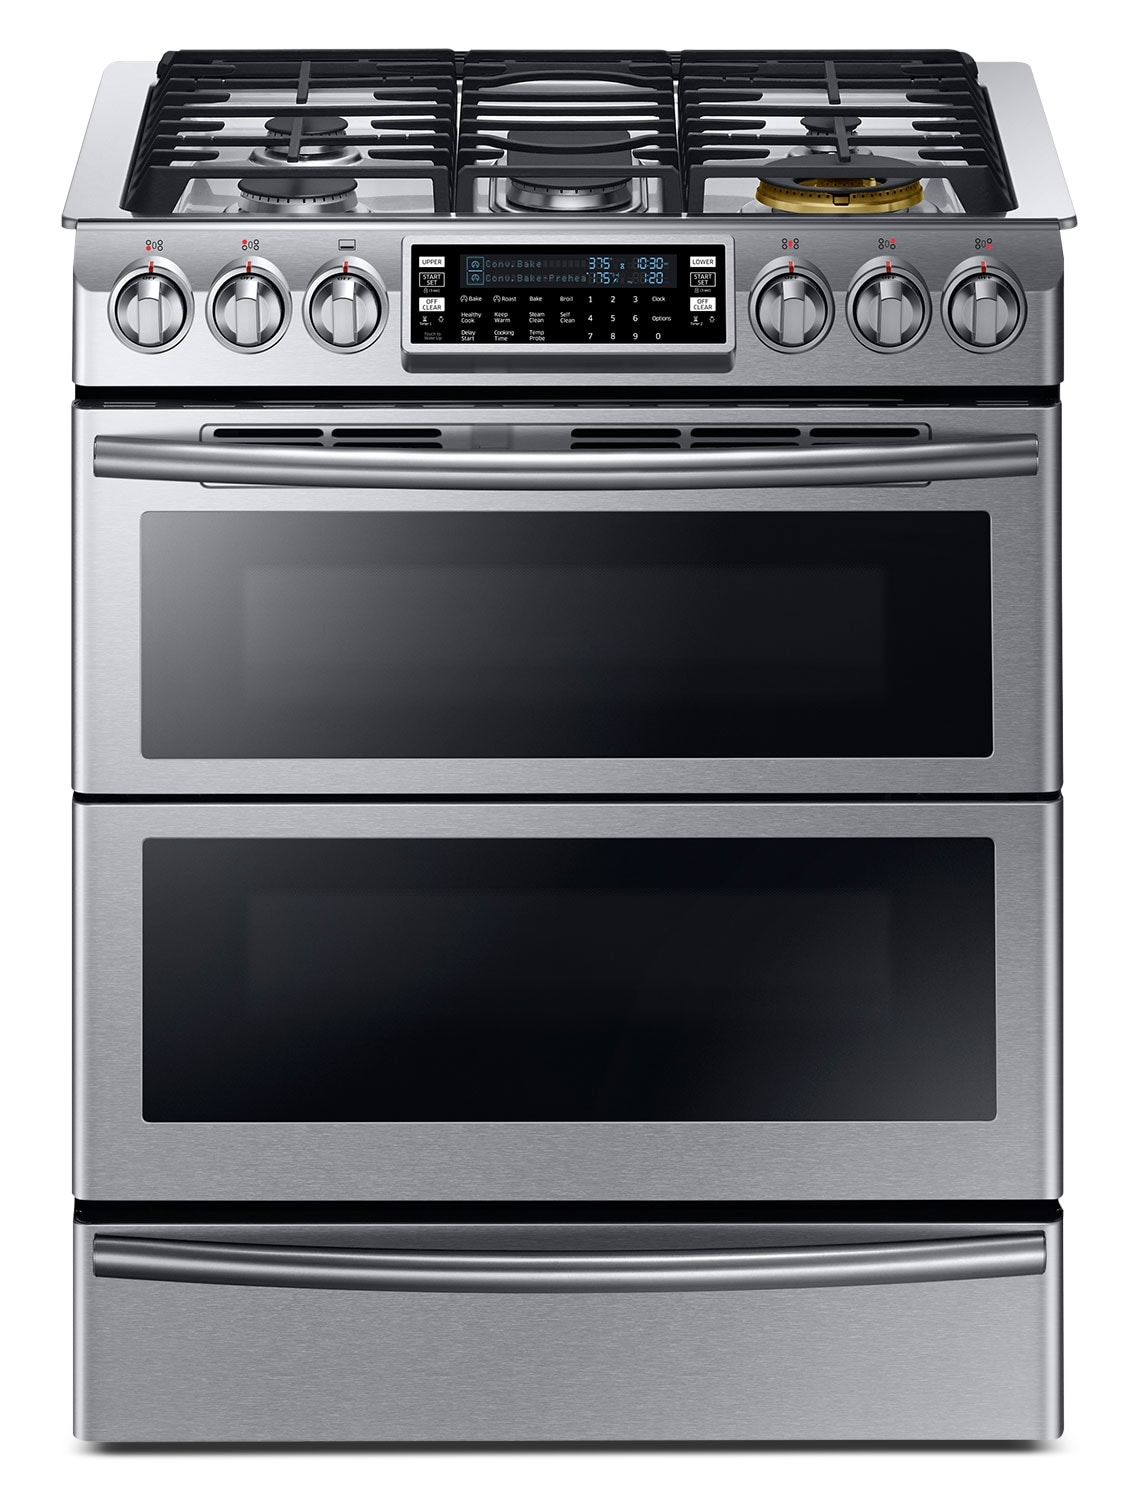 Cooking Products - Samsung 5.8 Cu. Ft. Dual-Fuel Slide-In Range – NY58J9850WS/AC